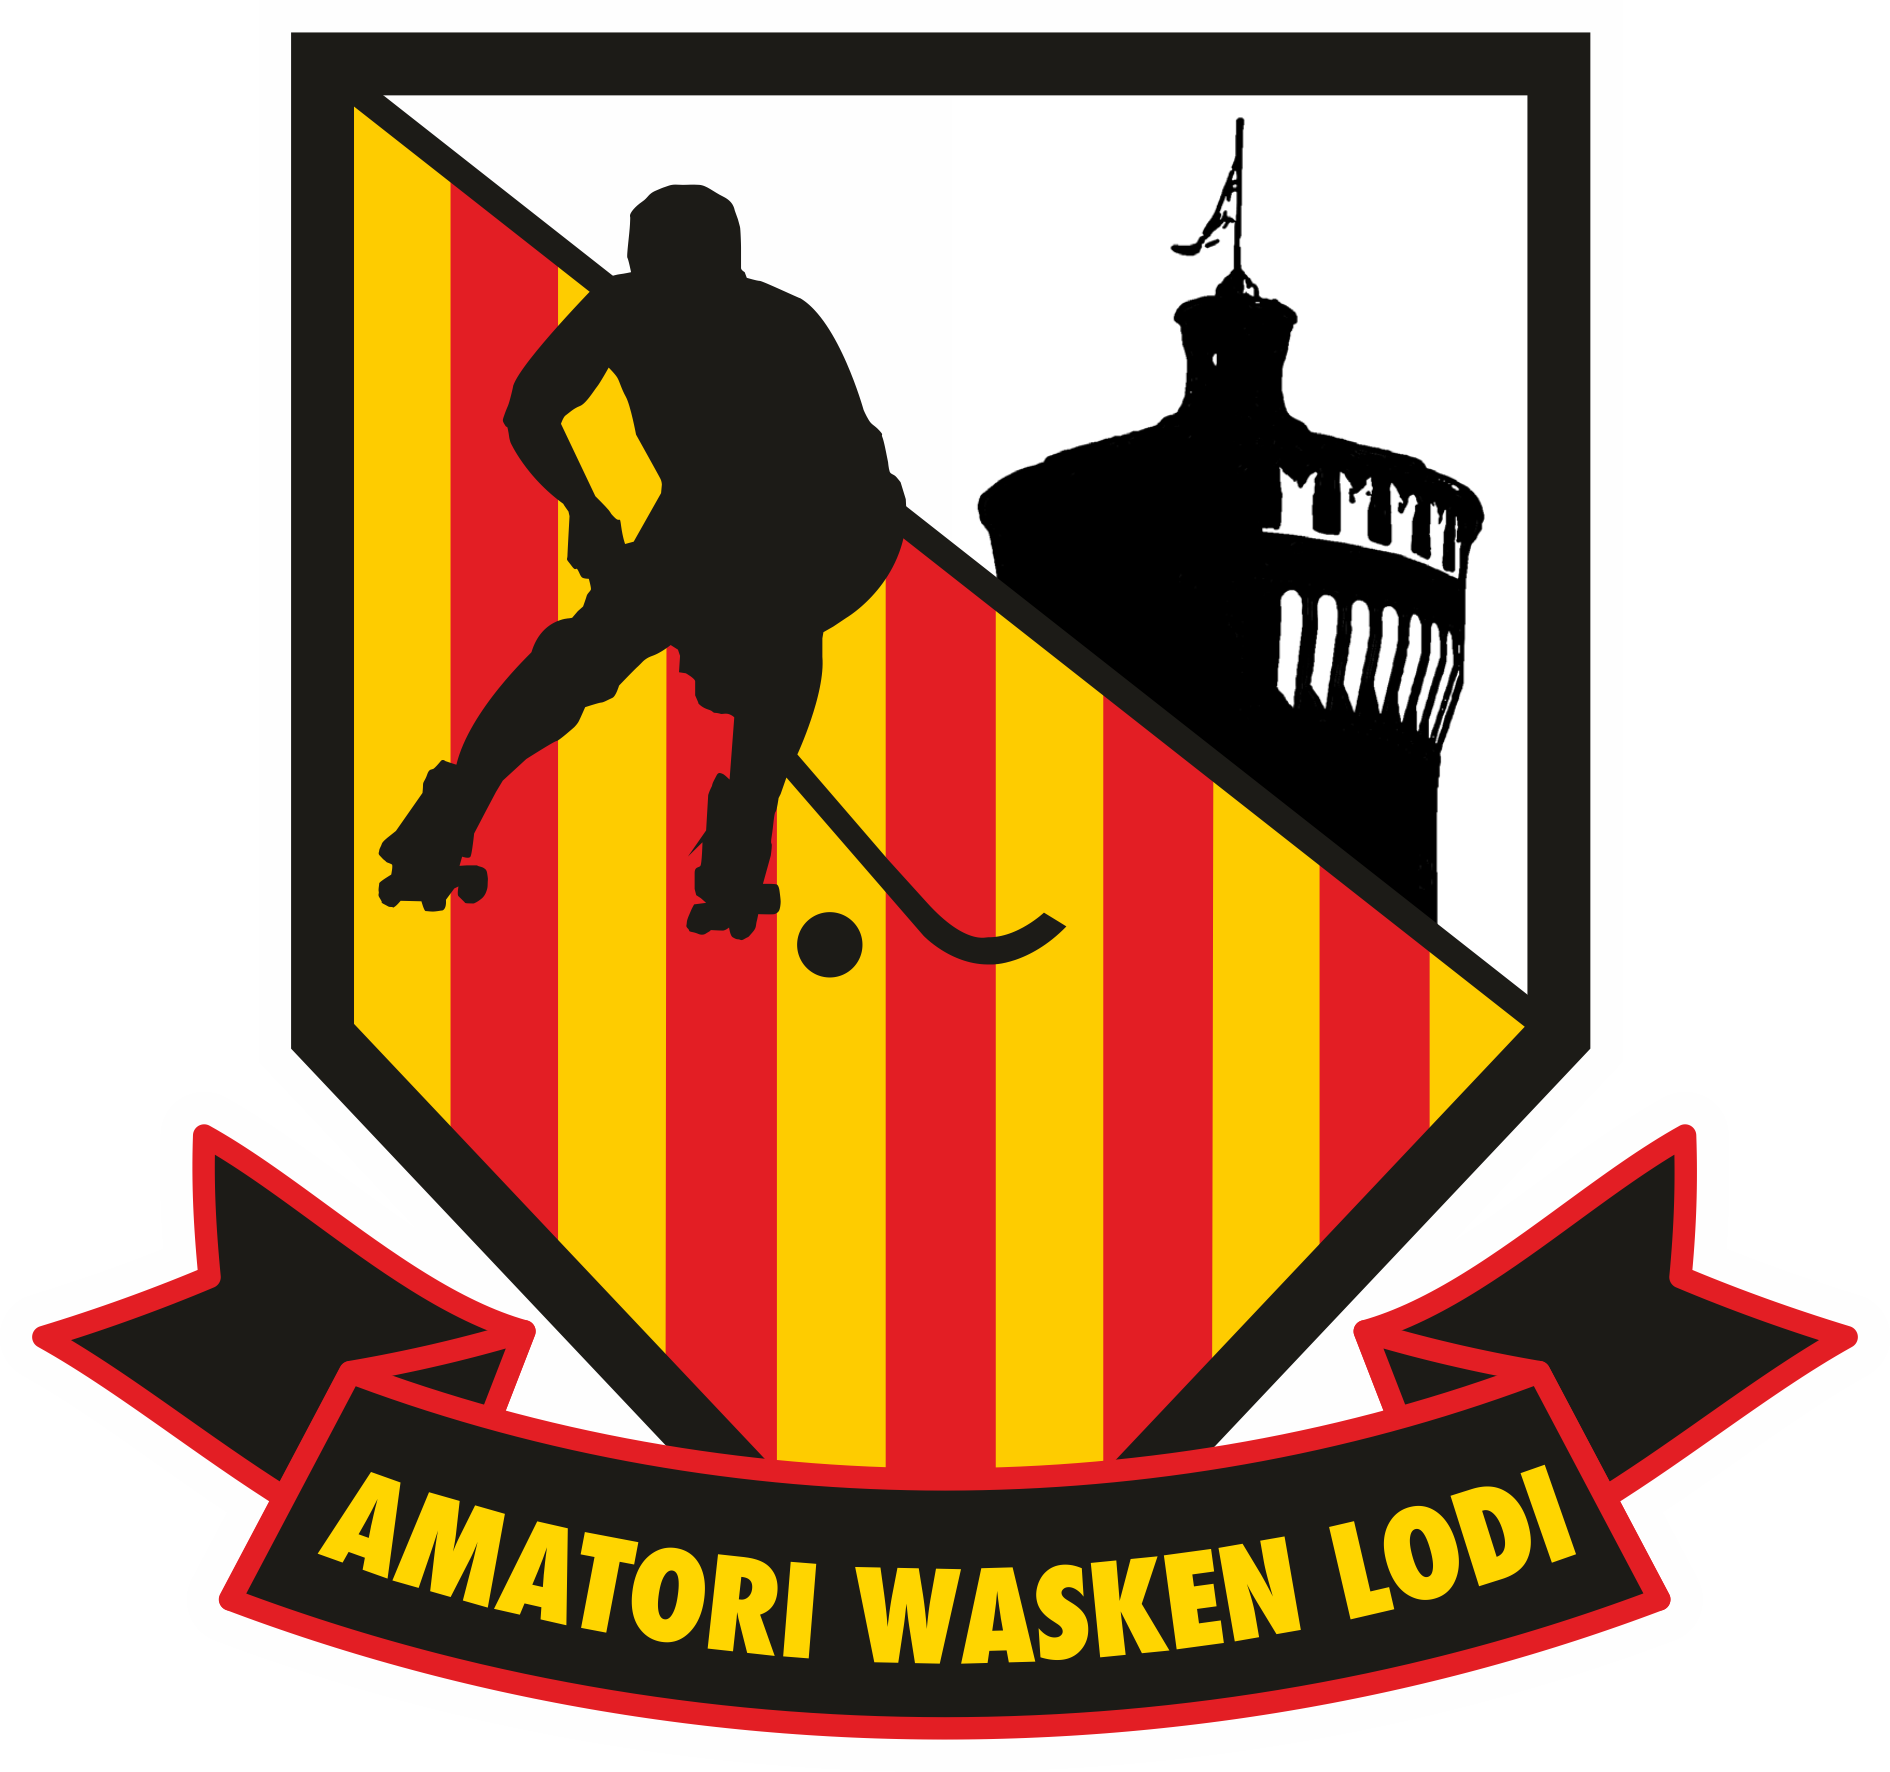 Amatori Wasken Lodi - CLUB WASKEN BOYS a.s.d. | Home